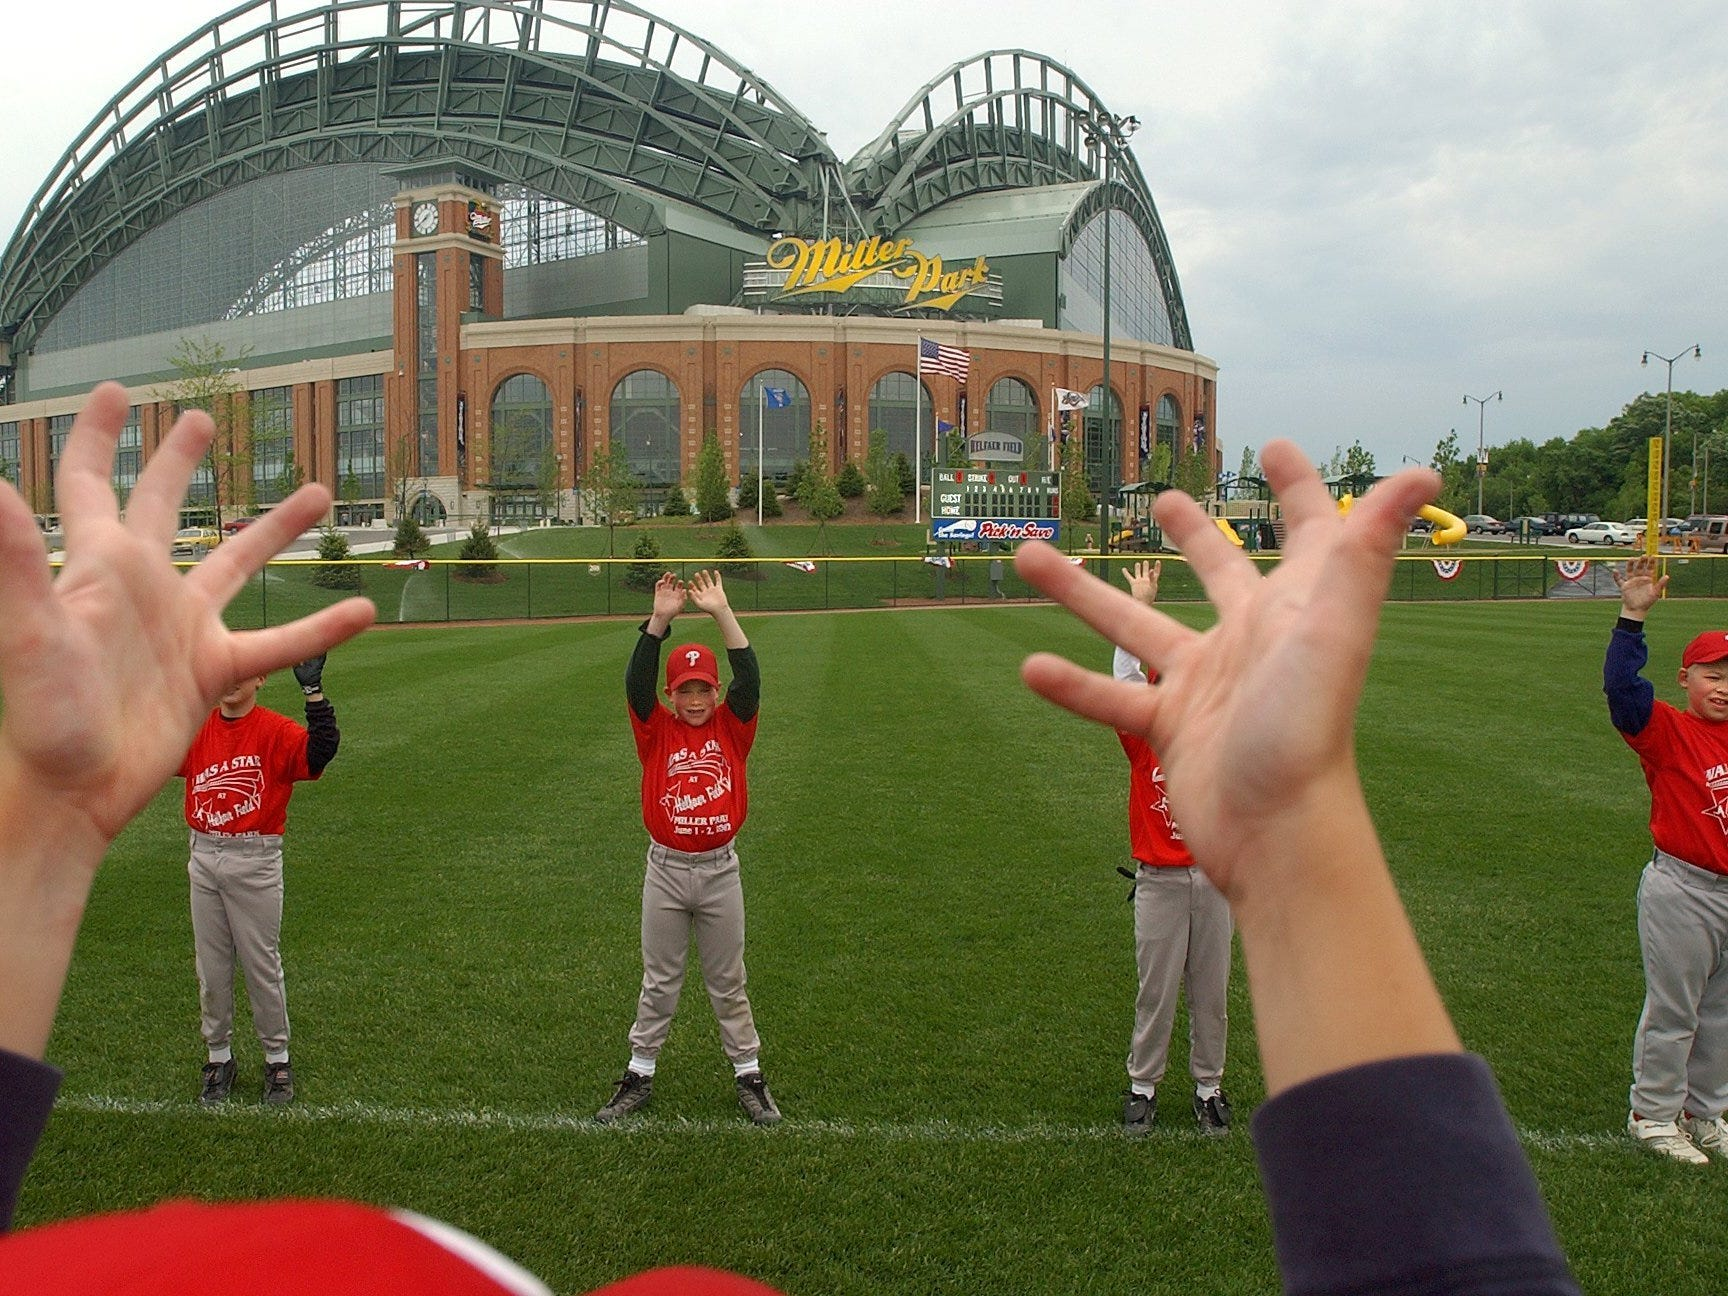 Red team player Chris Coon, 10, of the North Central Little League, leads his teammates through stretching exercises before their game at Helfaer Field, next to Miller Park on Sunday, June 2, 2002. It was the inaugural weekend for play at the new youth ball field.